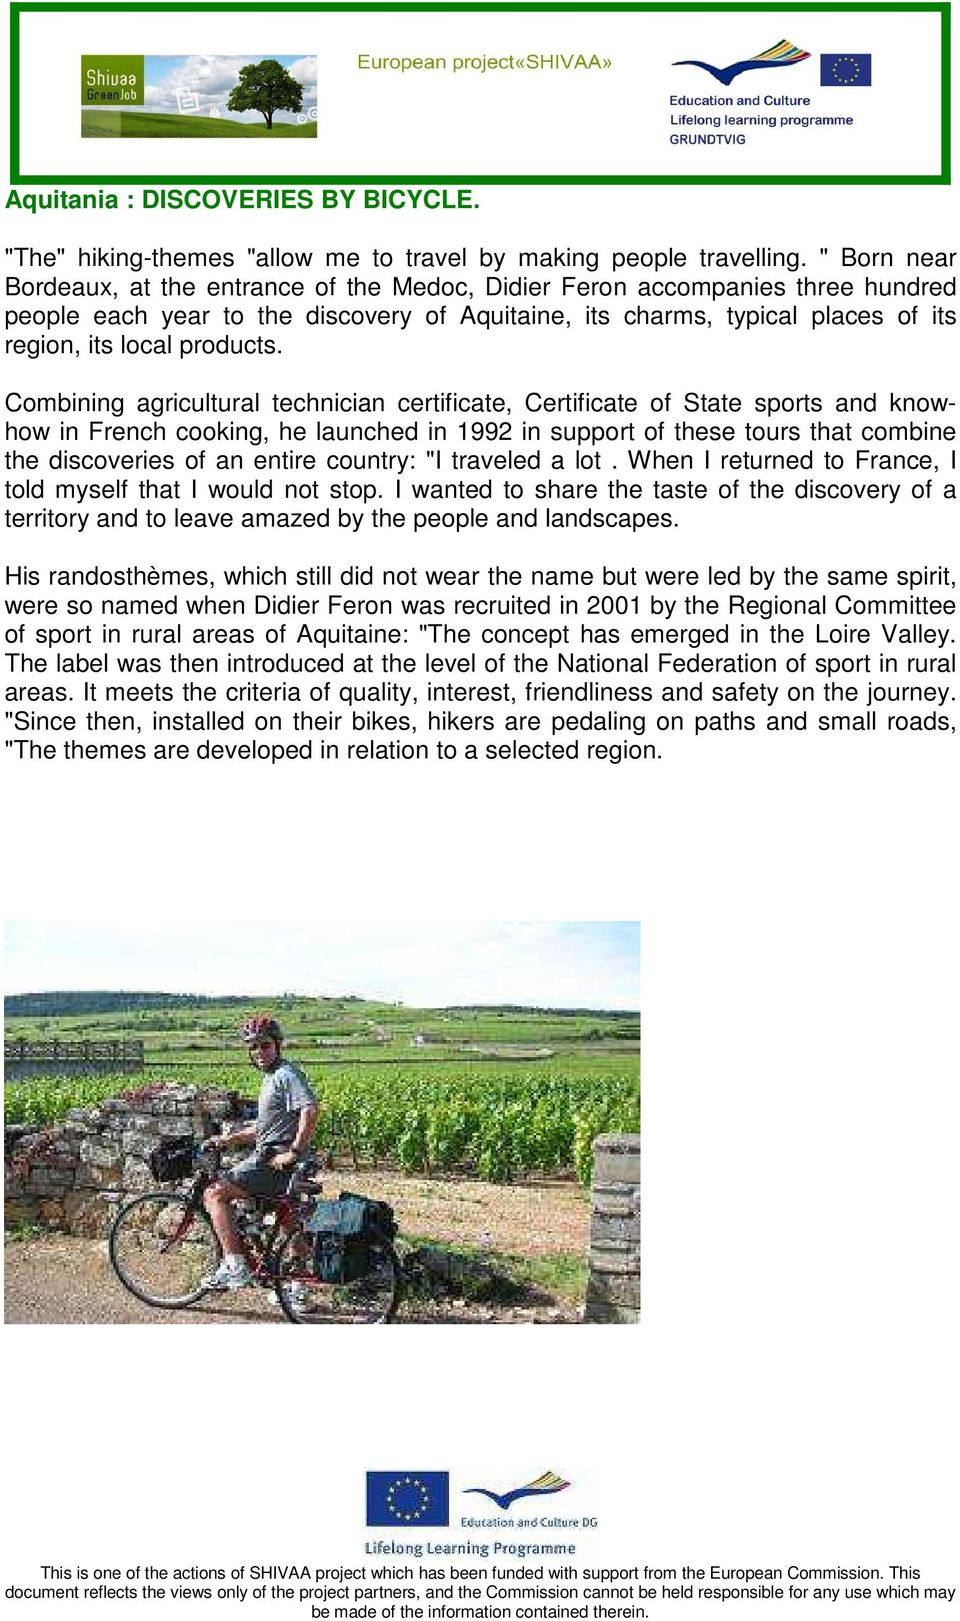 Combining agricultural technician certificate, Certificate of State sports and knowhow in French cooking, he launched in 1992 in support of these tours that combine the discoveries of an entire